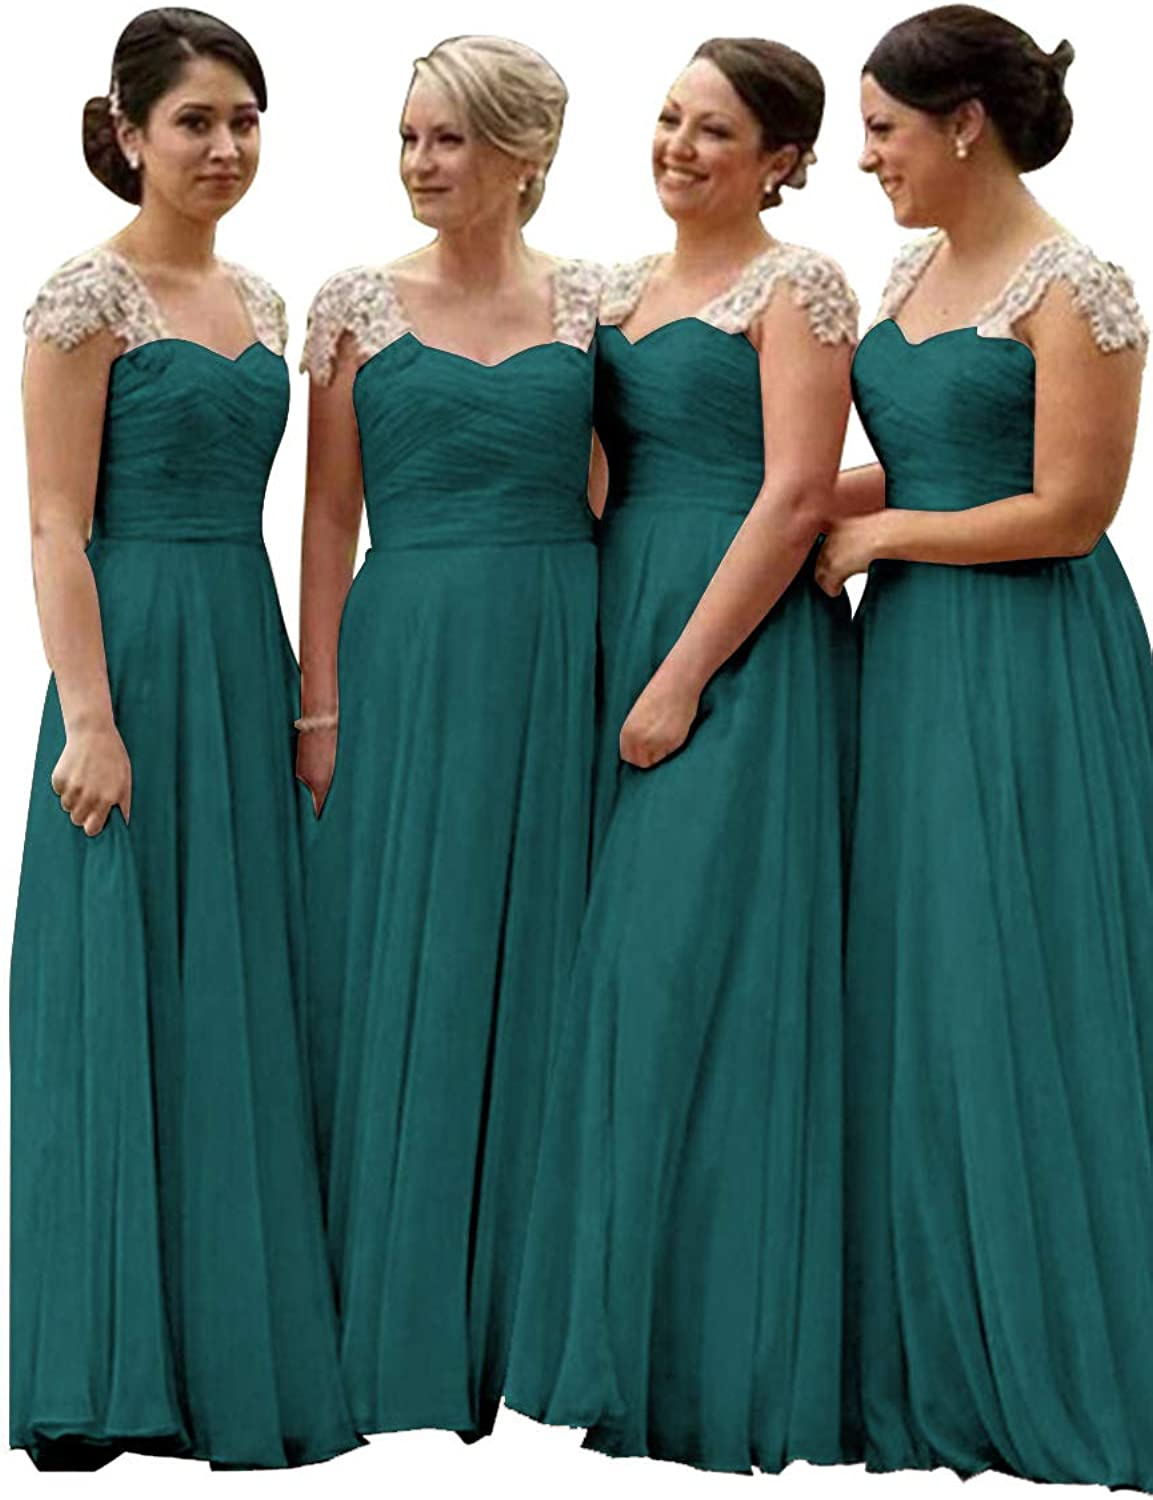 Staypretty Cap Sleeve Bridesmaid Dresses Long ALine 2019 Lace Evening Wedding Party Gowns